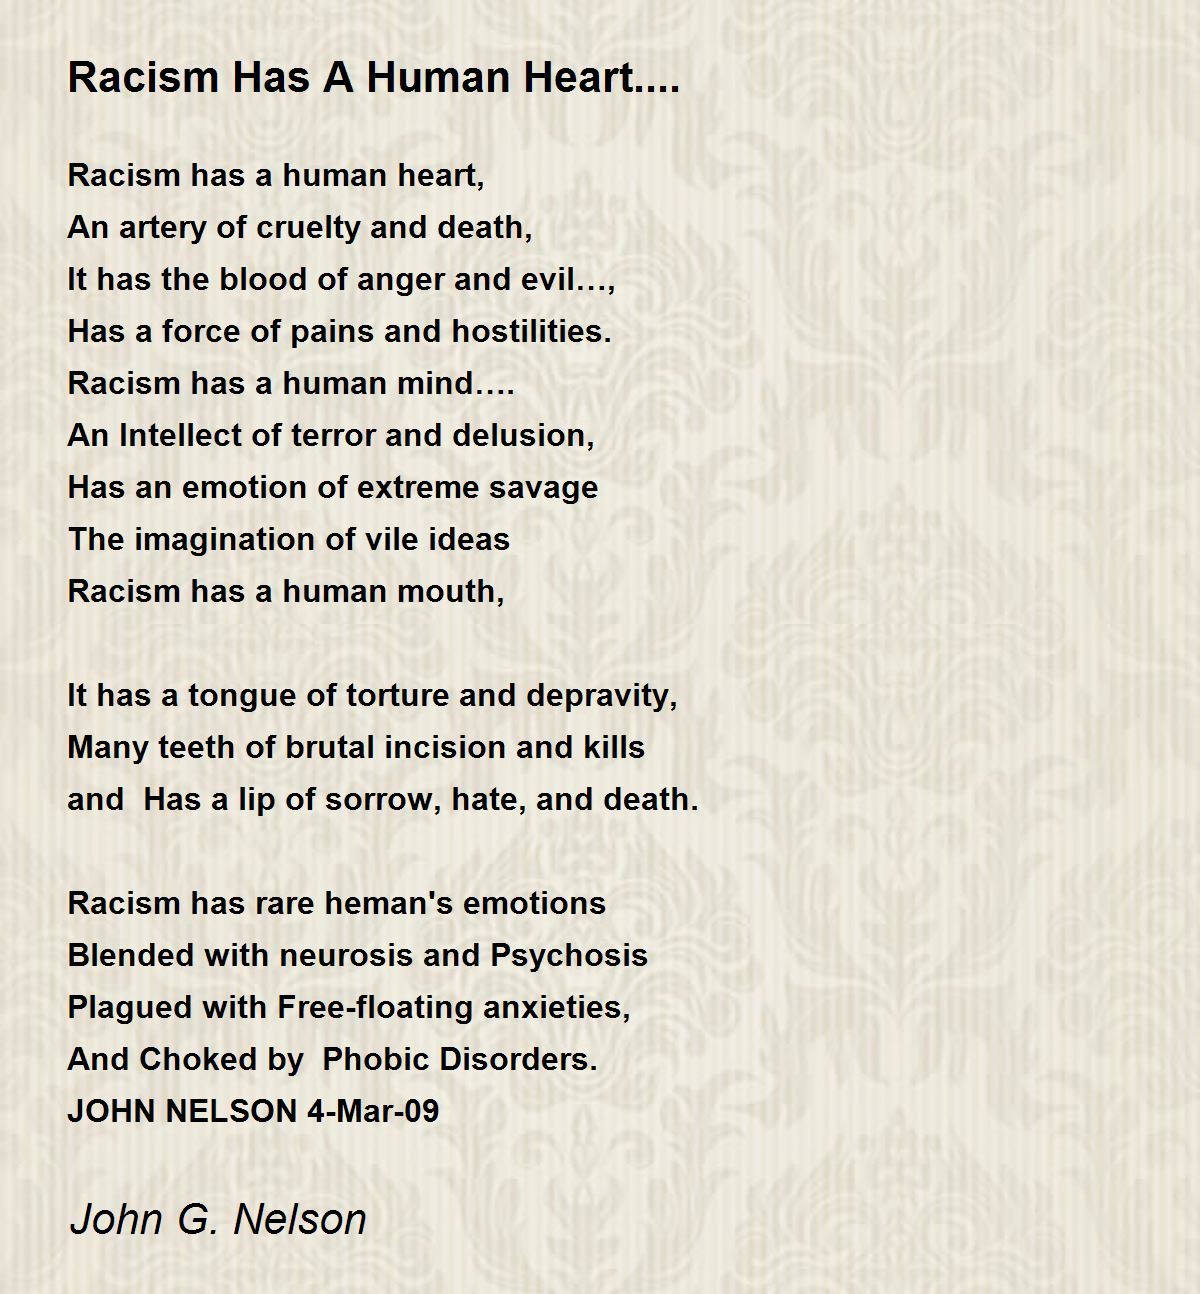 poetry on racism - Khafre